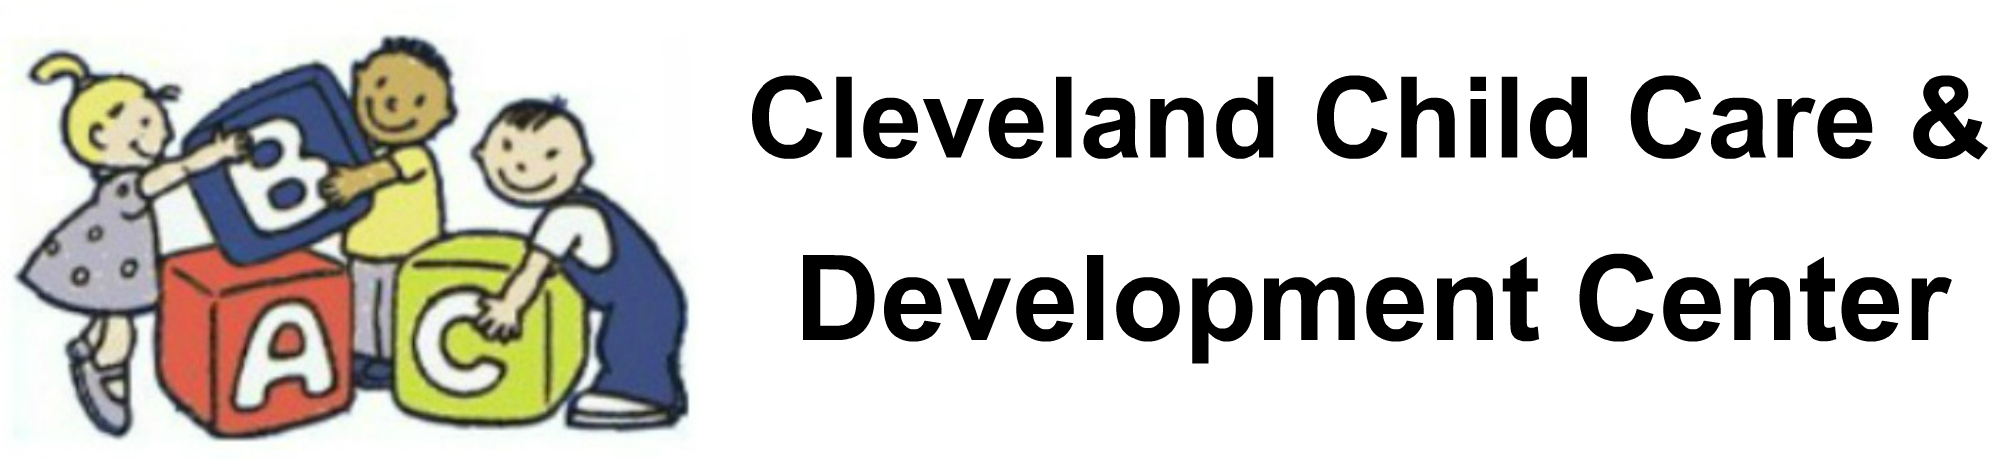 Cleveland Child Care & Development